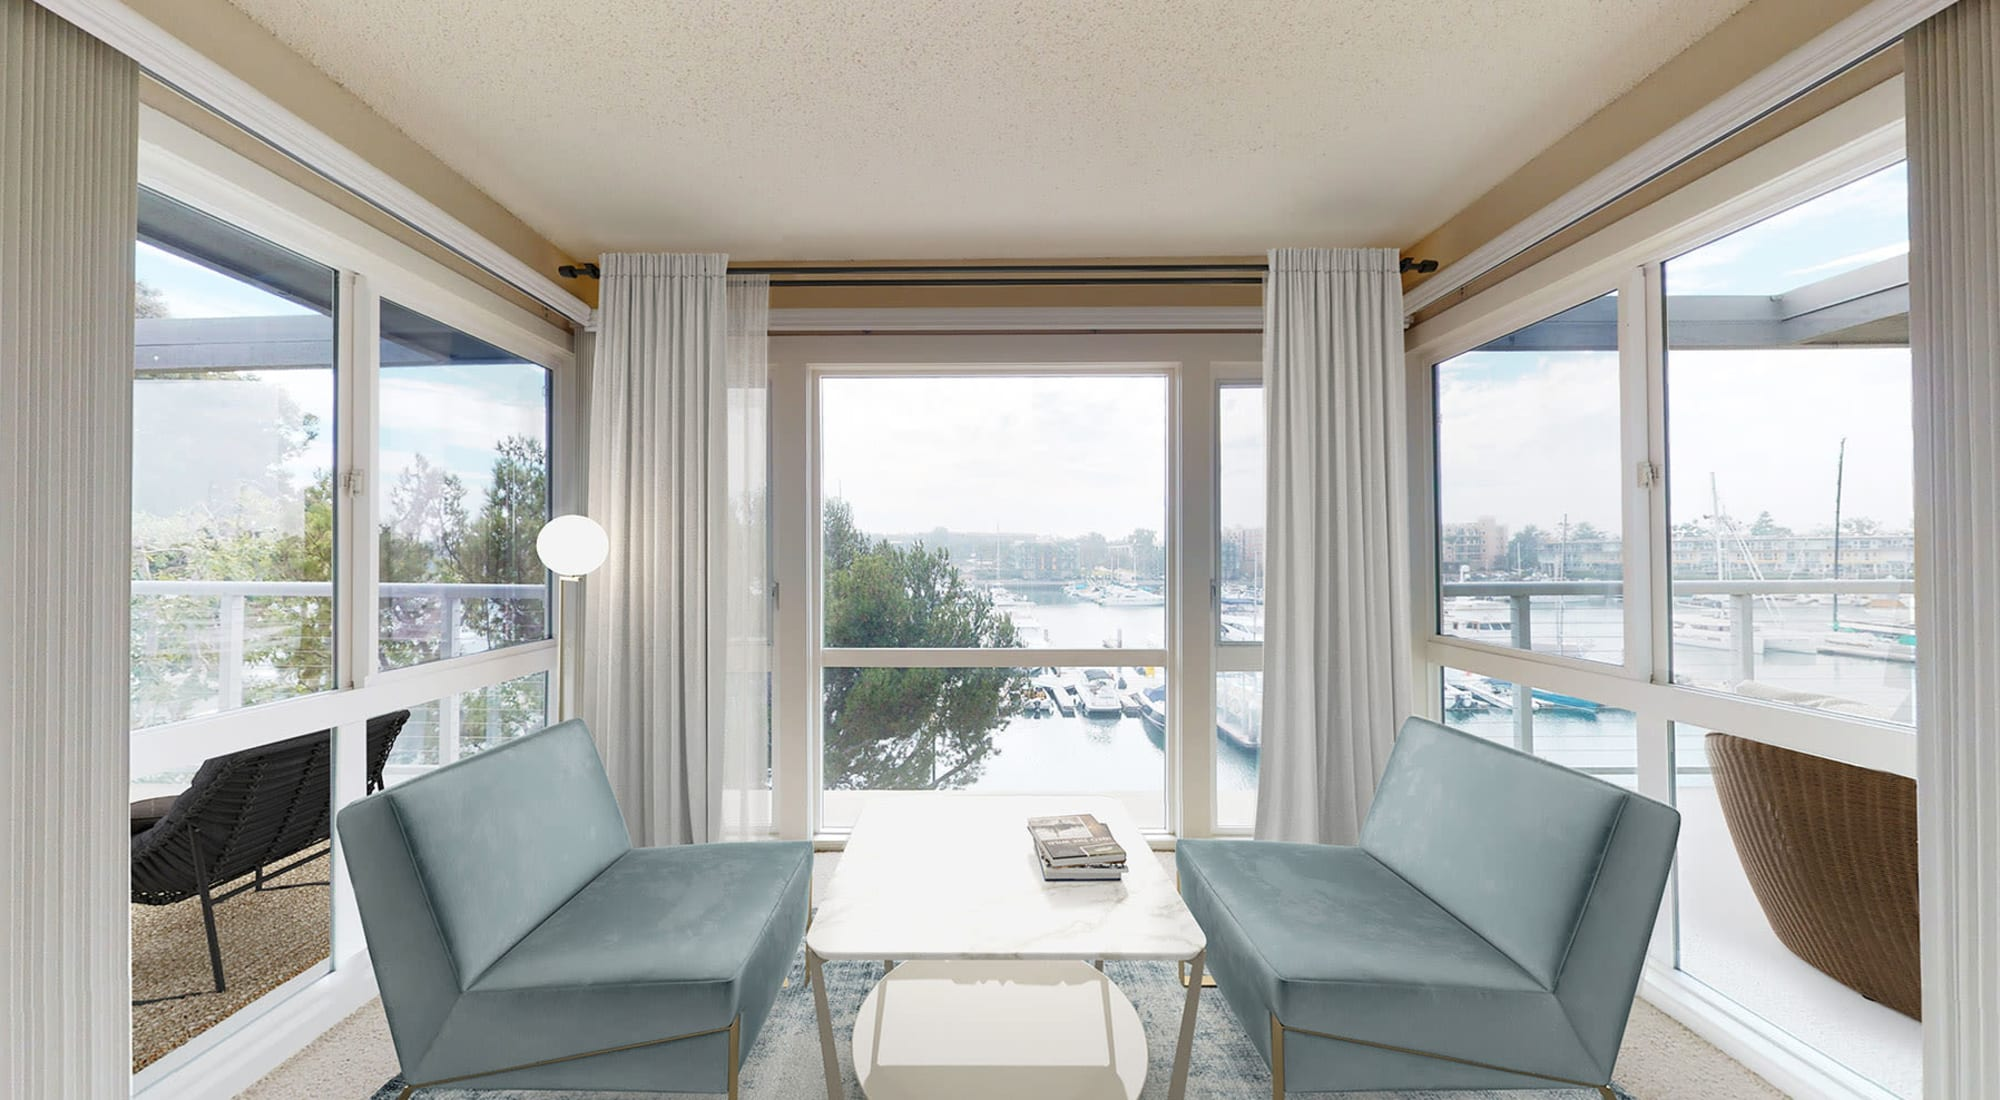 Stylish seating area with expansive waterfront view in a spacouis apartment home at The Tides at Marina Harbor in Marina Del Rey, California